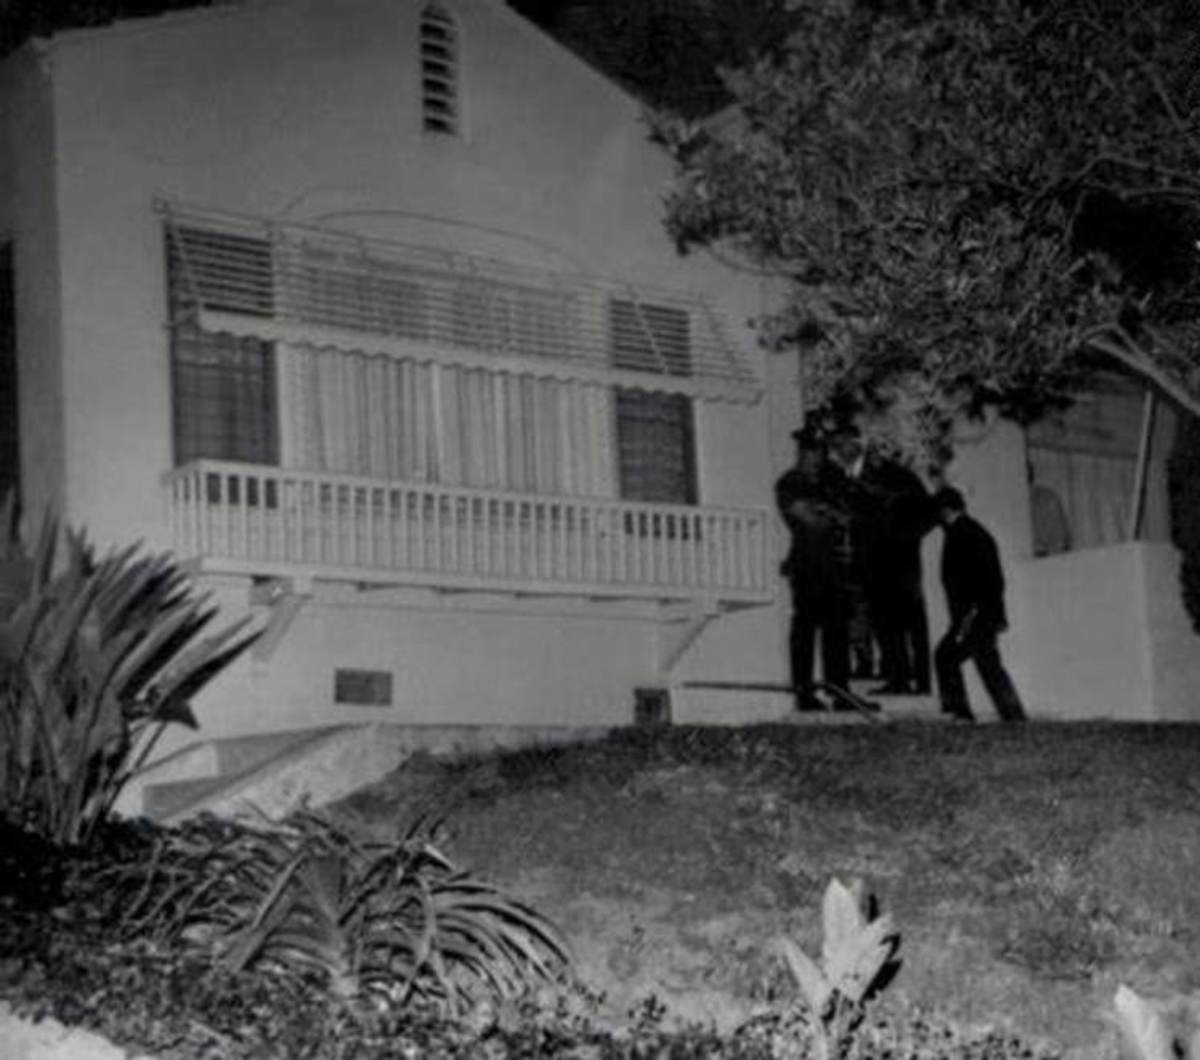 The House on Waverly Drive: The Tate and LaBianca Murders